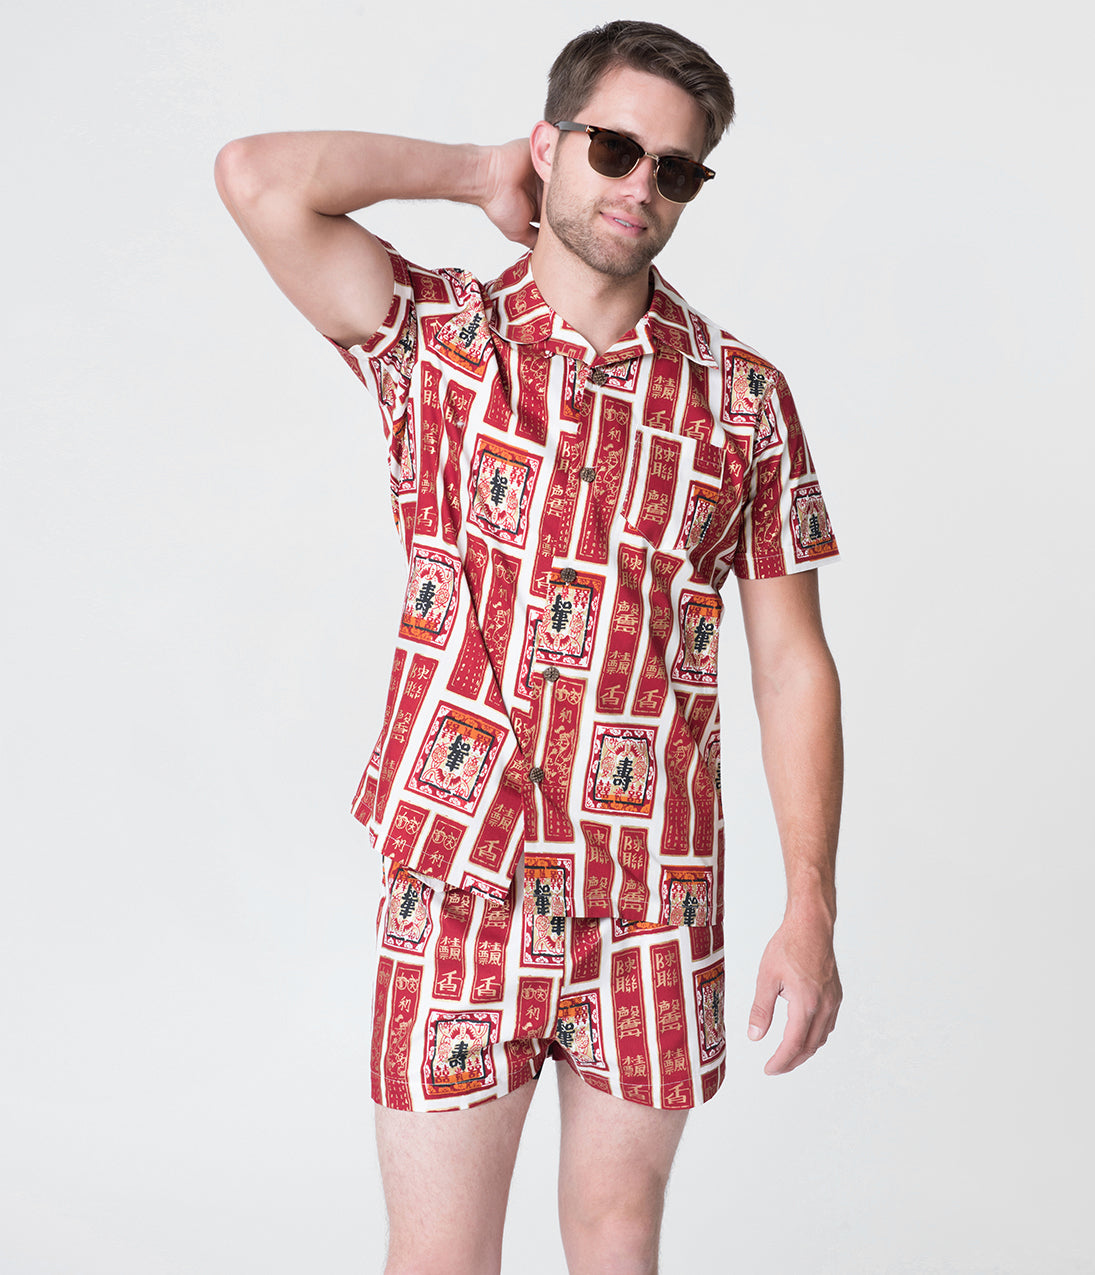 New Fifties Dresses | 50s Inspired Dresses Alfred Shaheen Golden Scrolls Print Mens Hawaiian Cabana Set Shorts $78.00 AT vintagedancer.com